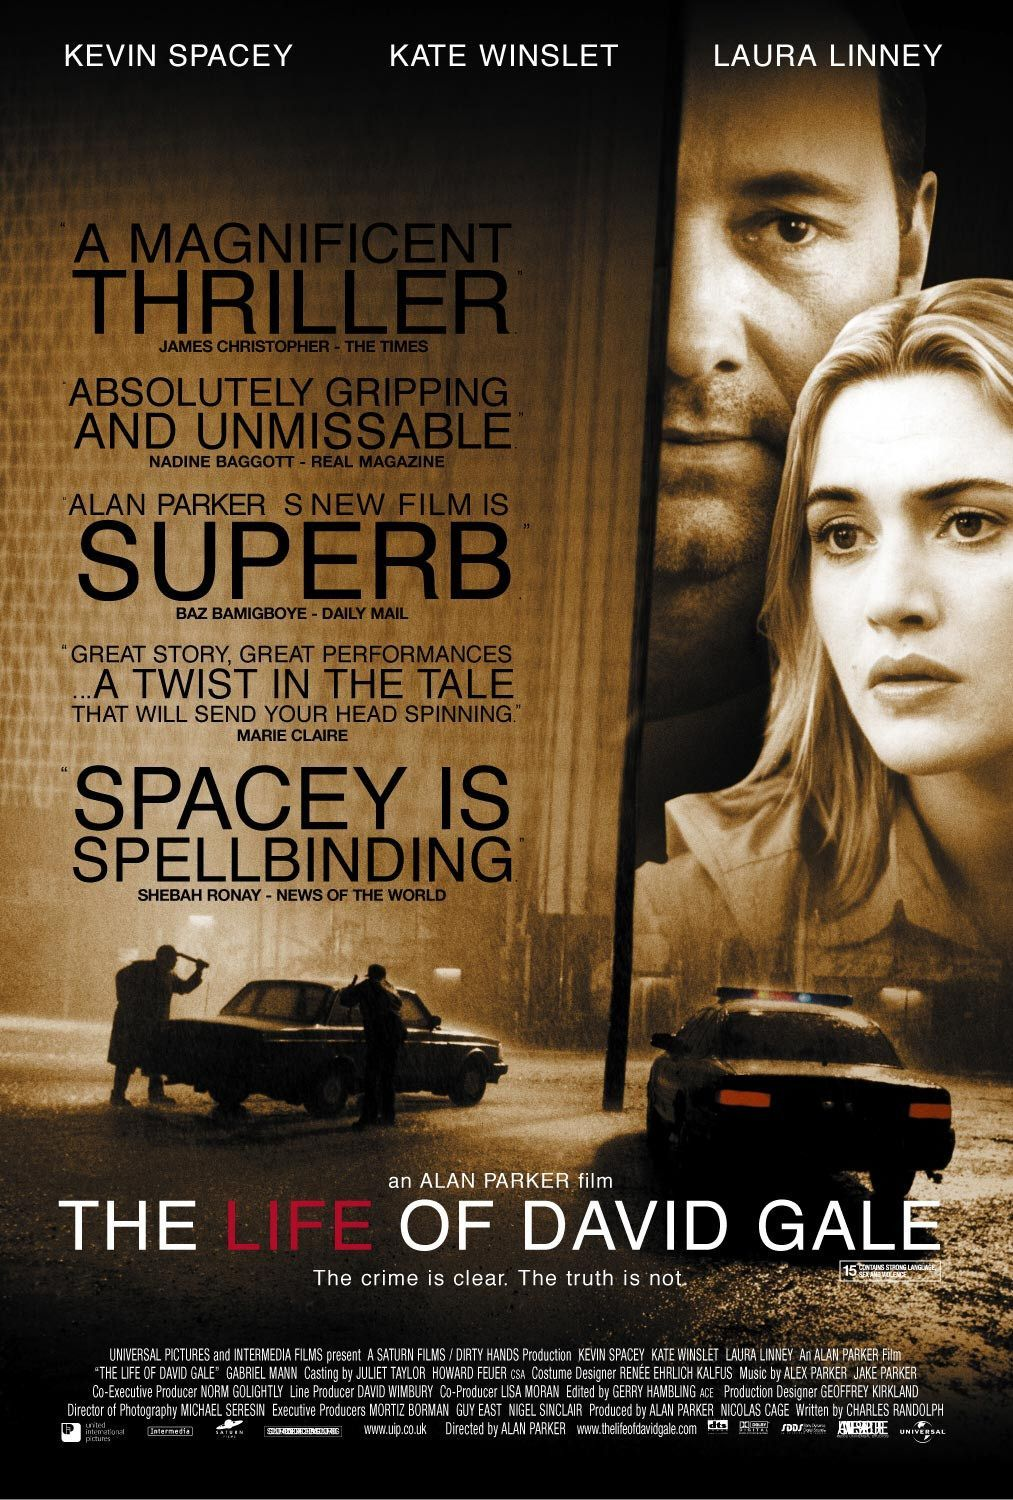 the life of david gale starring kevin spacey kate winslet high resolution official theatrical movie poster of for the life of david gale image dimensions 1013 x directed by alan parker